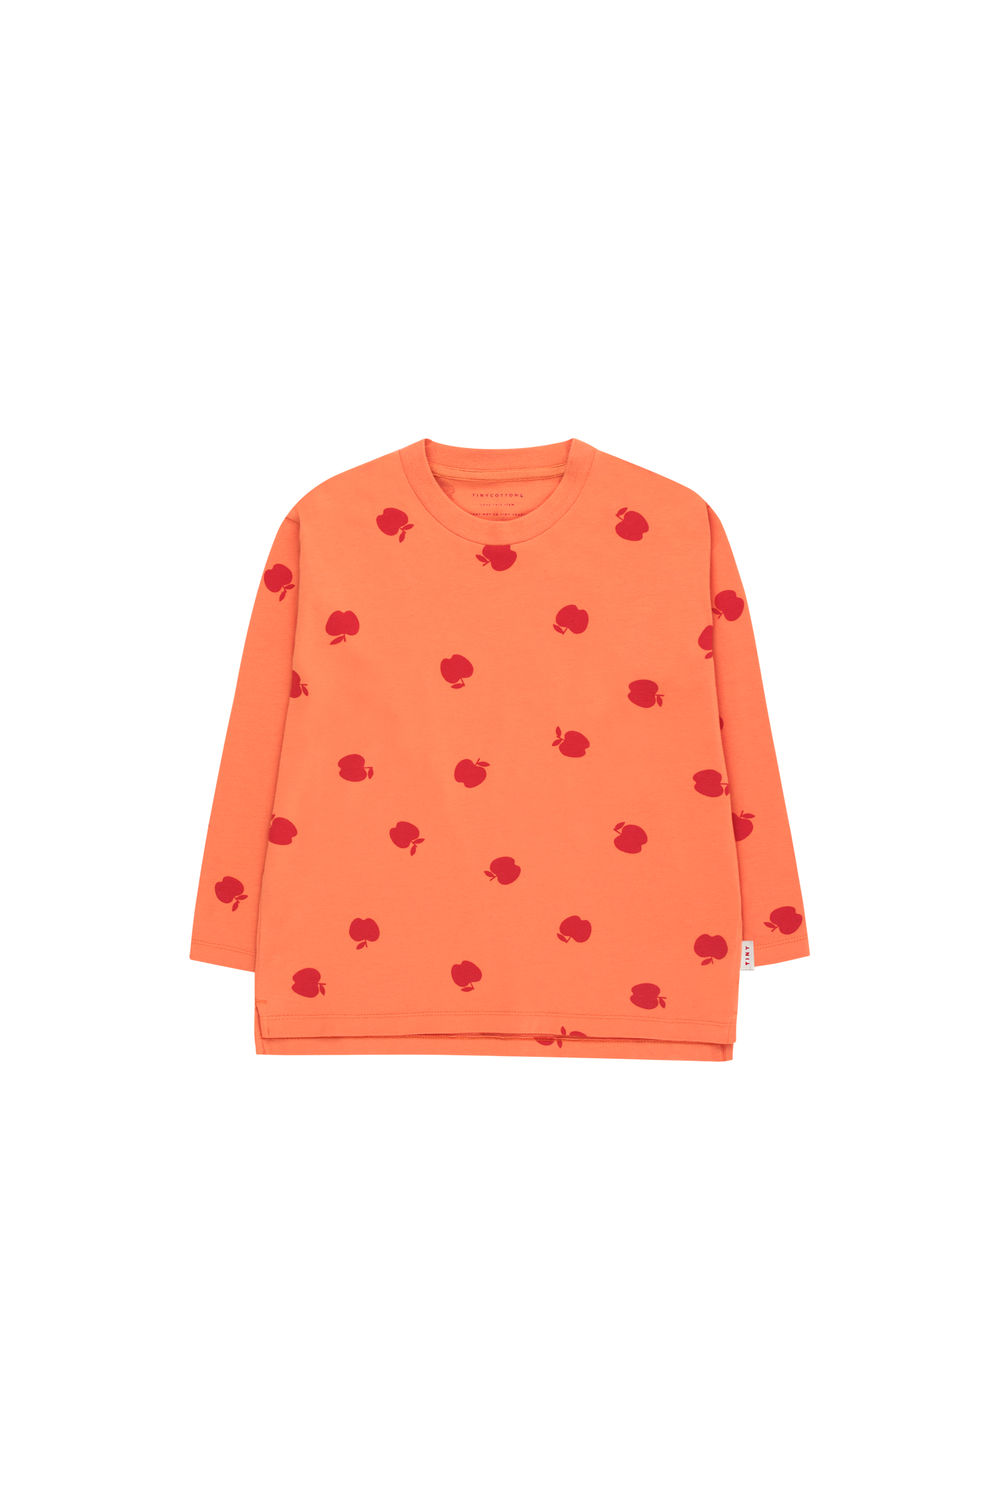 TINY COTTONS APPLES LS TEE, CORAL